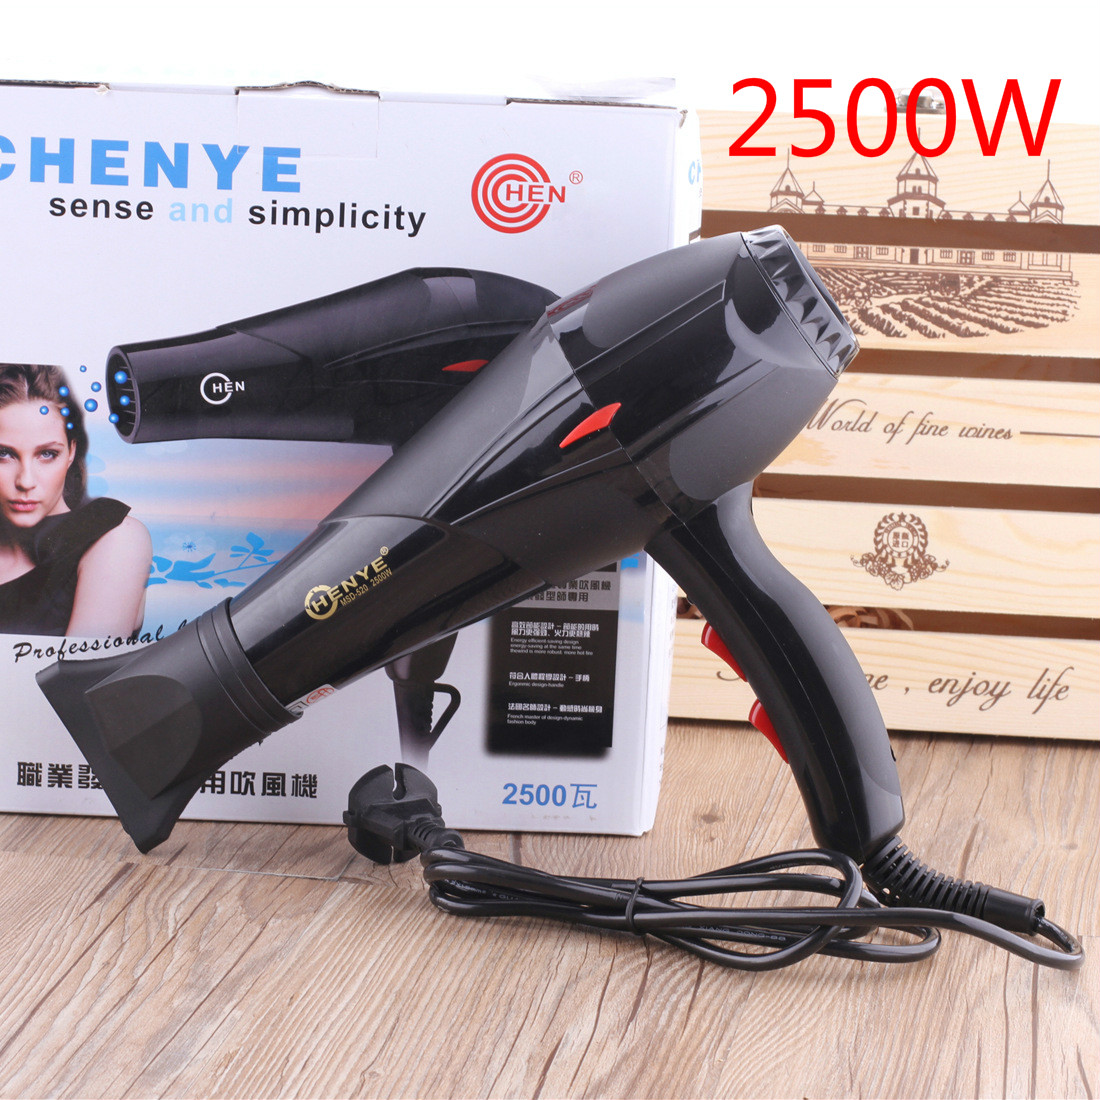 High Power 2500W Household Hair Dryer Hot and Cold Air Conversion 220V with Air Nozzle Salon Hair Dryer Curl Diffuser Wind high power hair dryer household anion hot and cold air mute hair dryer with professional collection cover